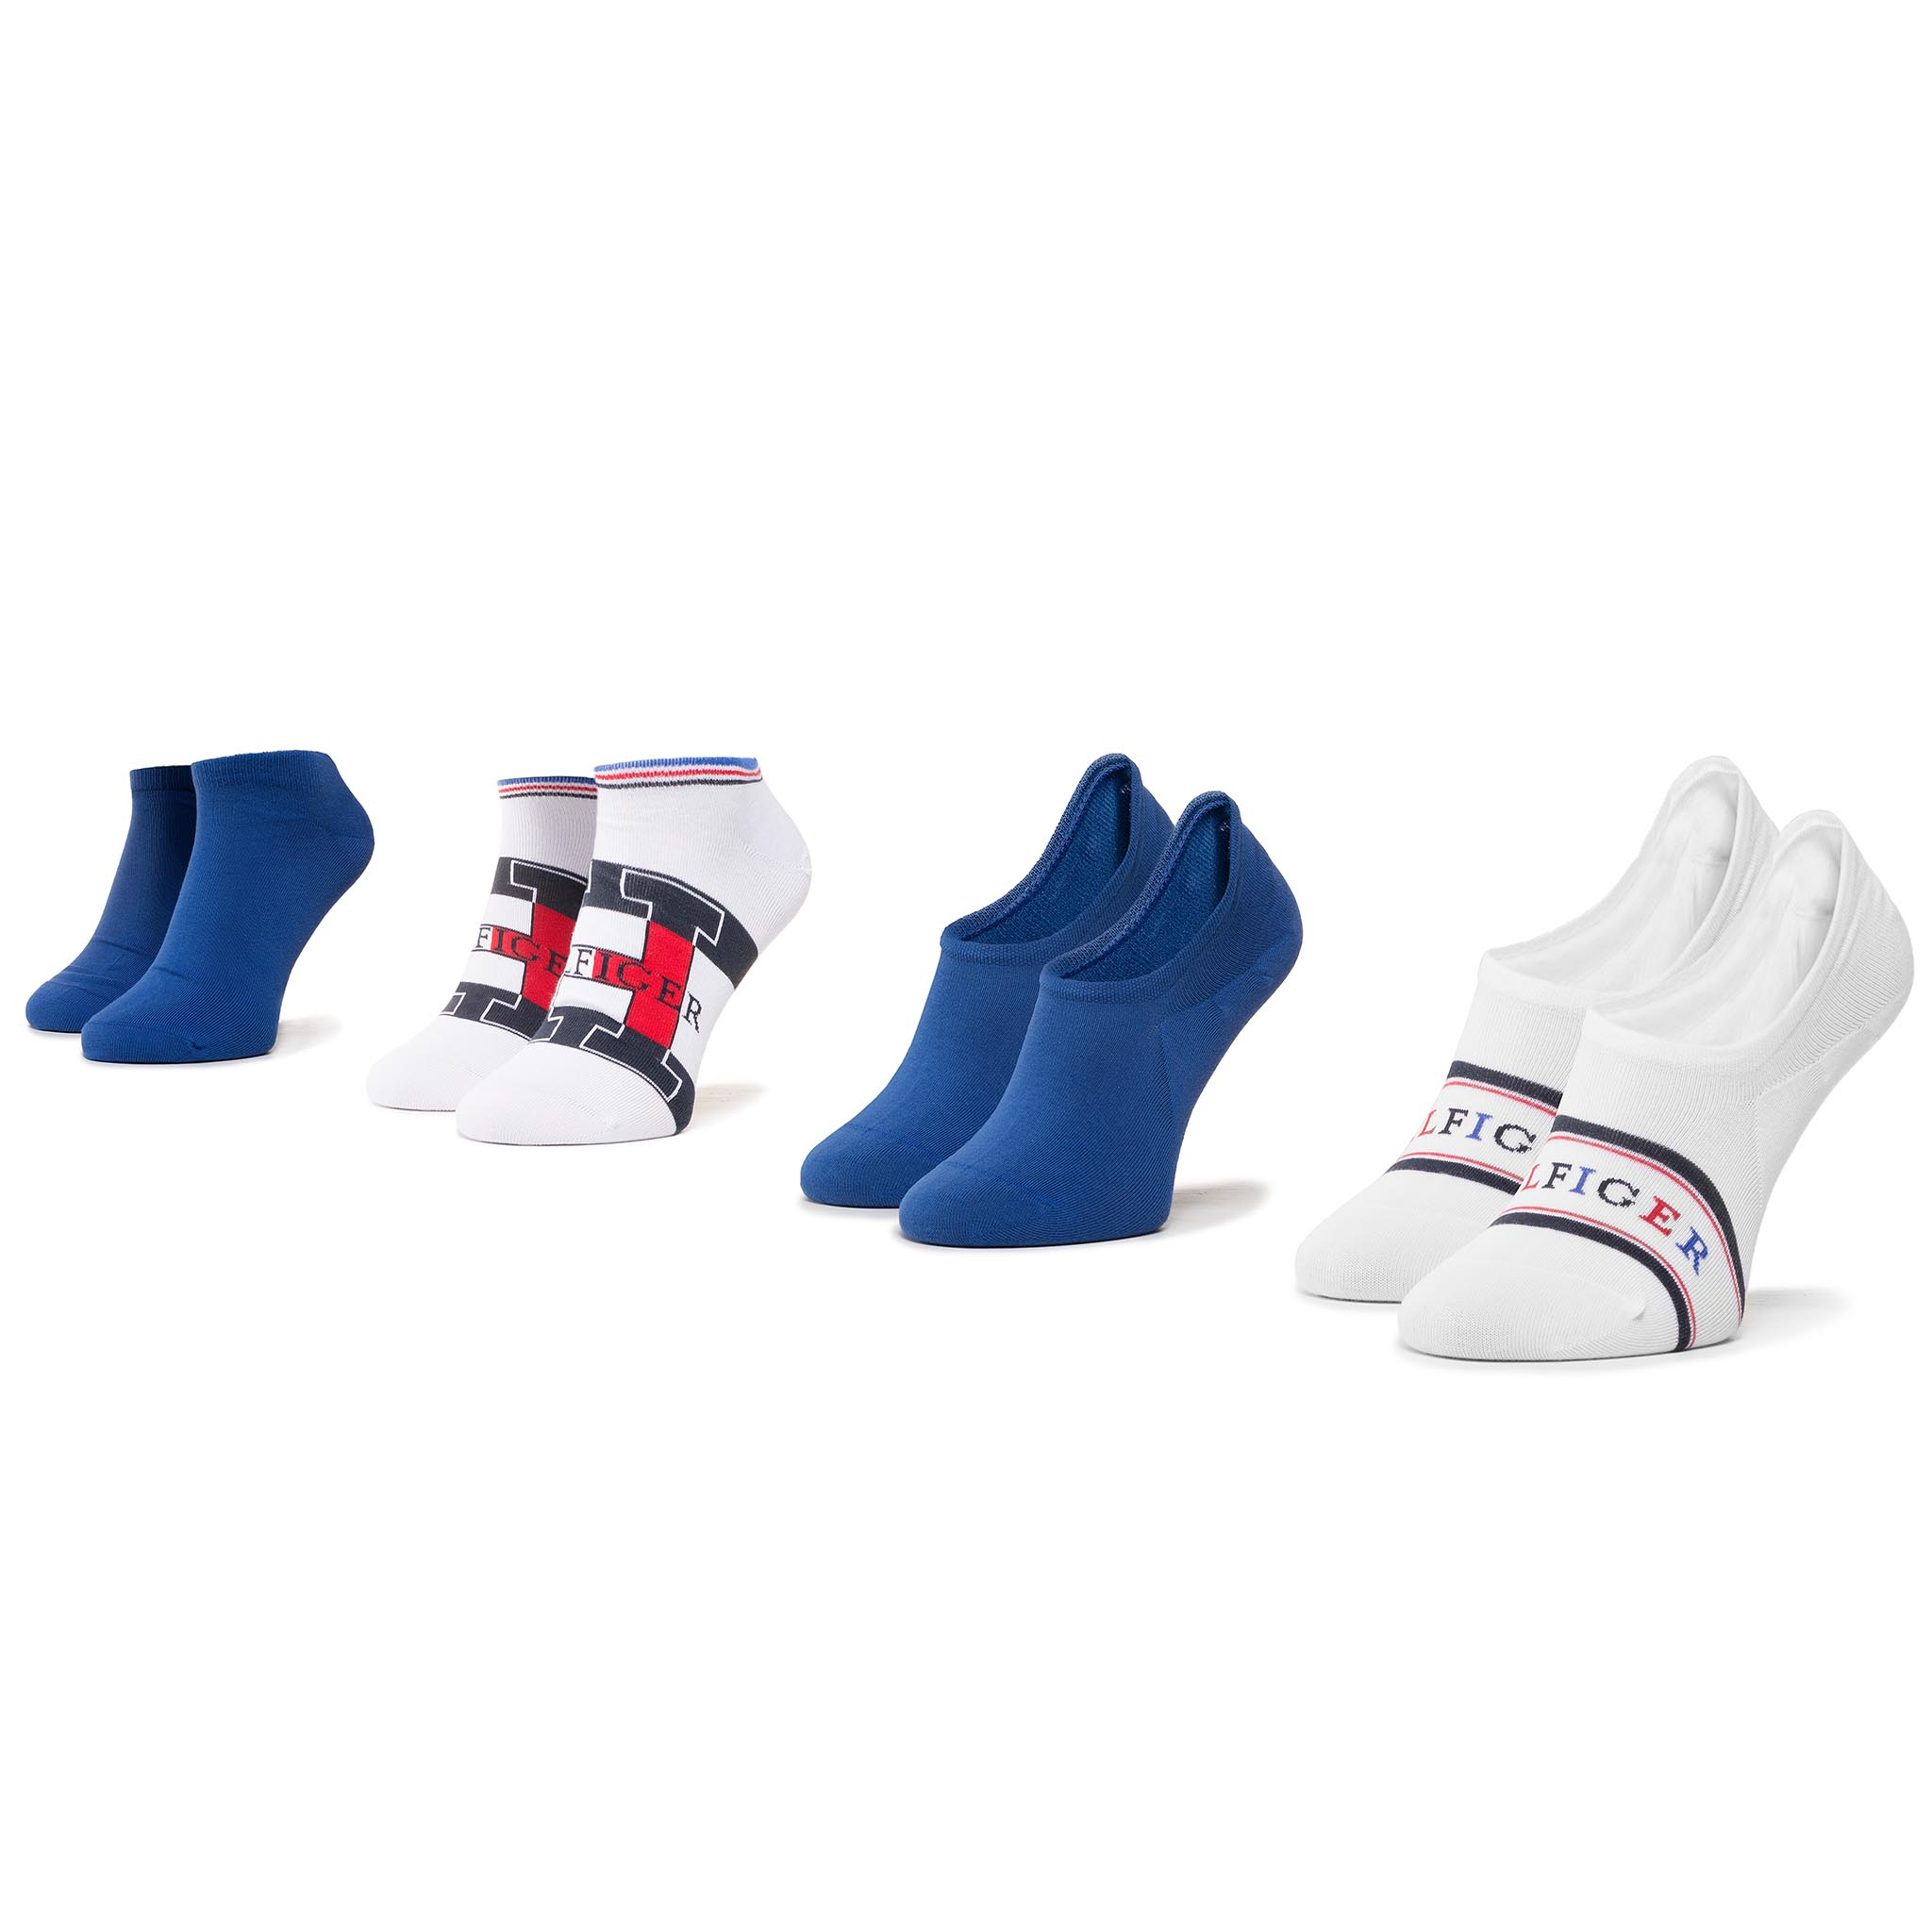 Set De 4 Perechi De Șosete Medii Unisex Tommy Hilfiger - 320202001 Surf The Web/Black Iris 027 imagine